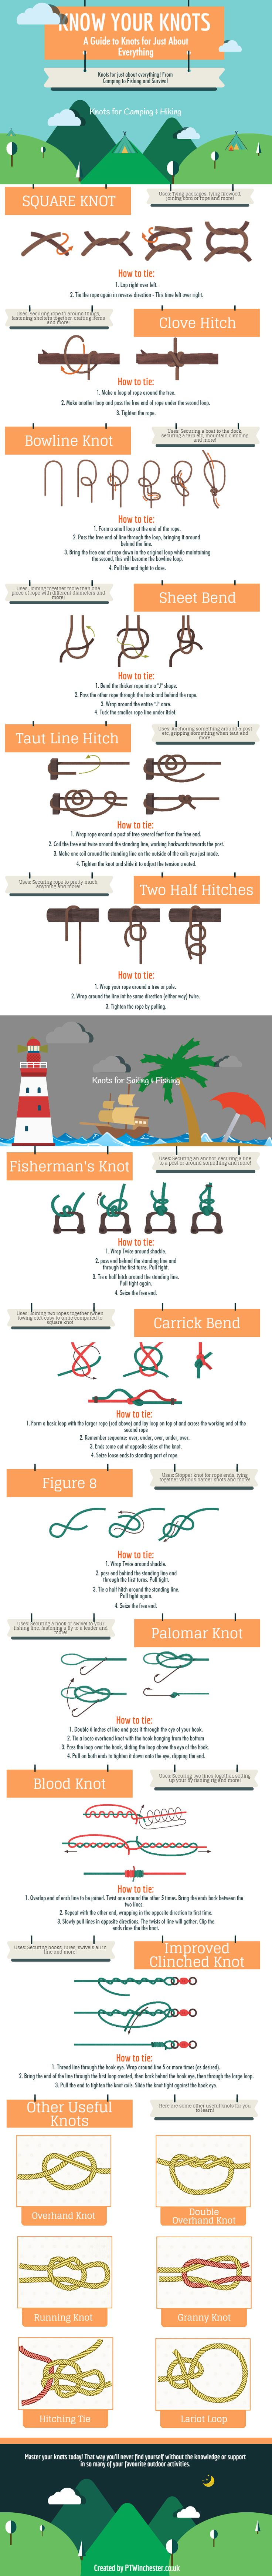 Know your knots - a guide to knots for just about everything  #forestschool #knots